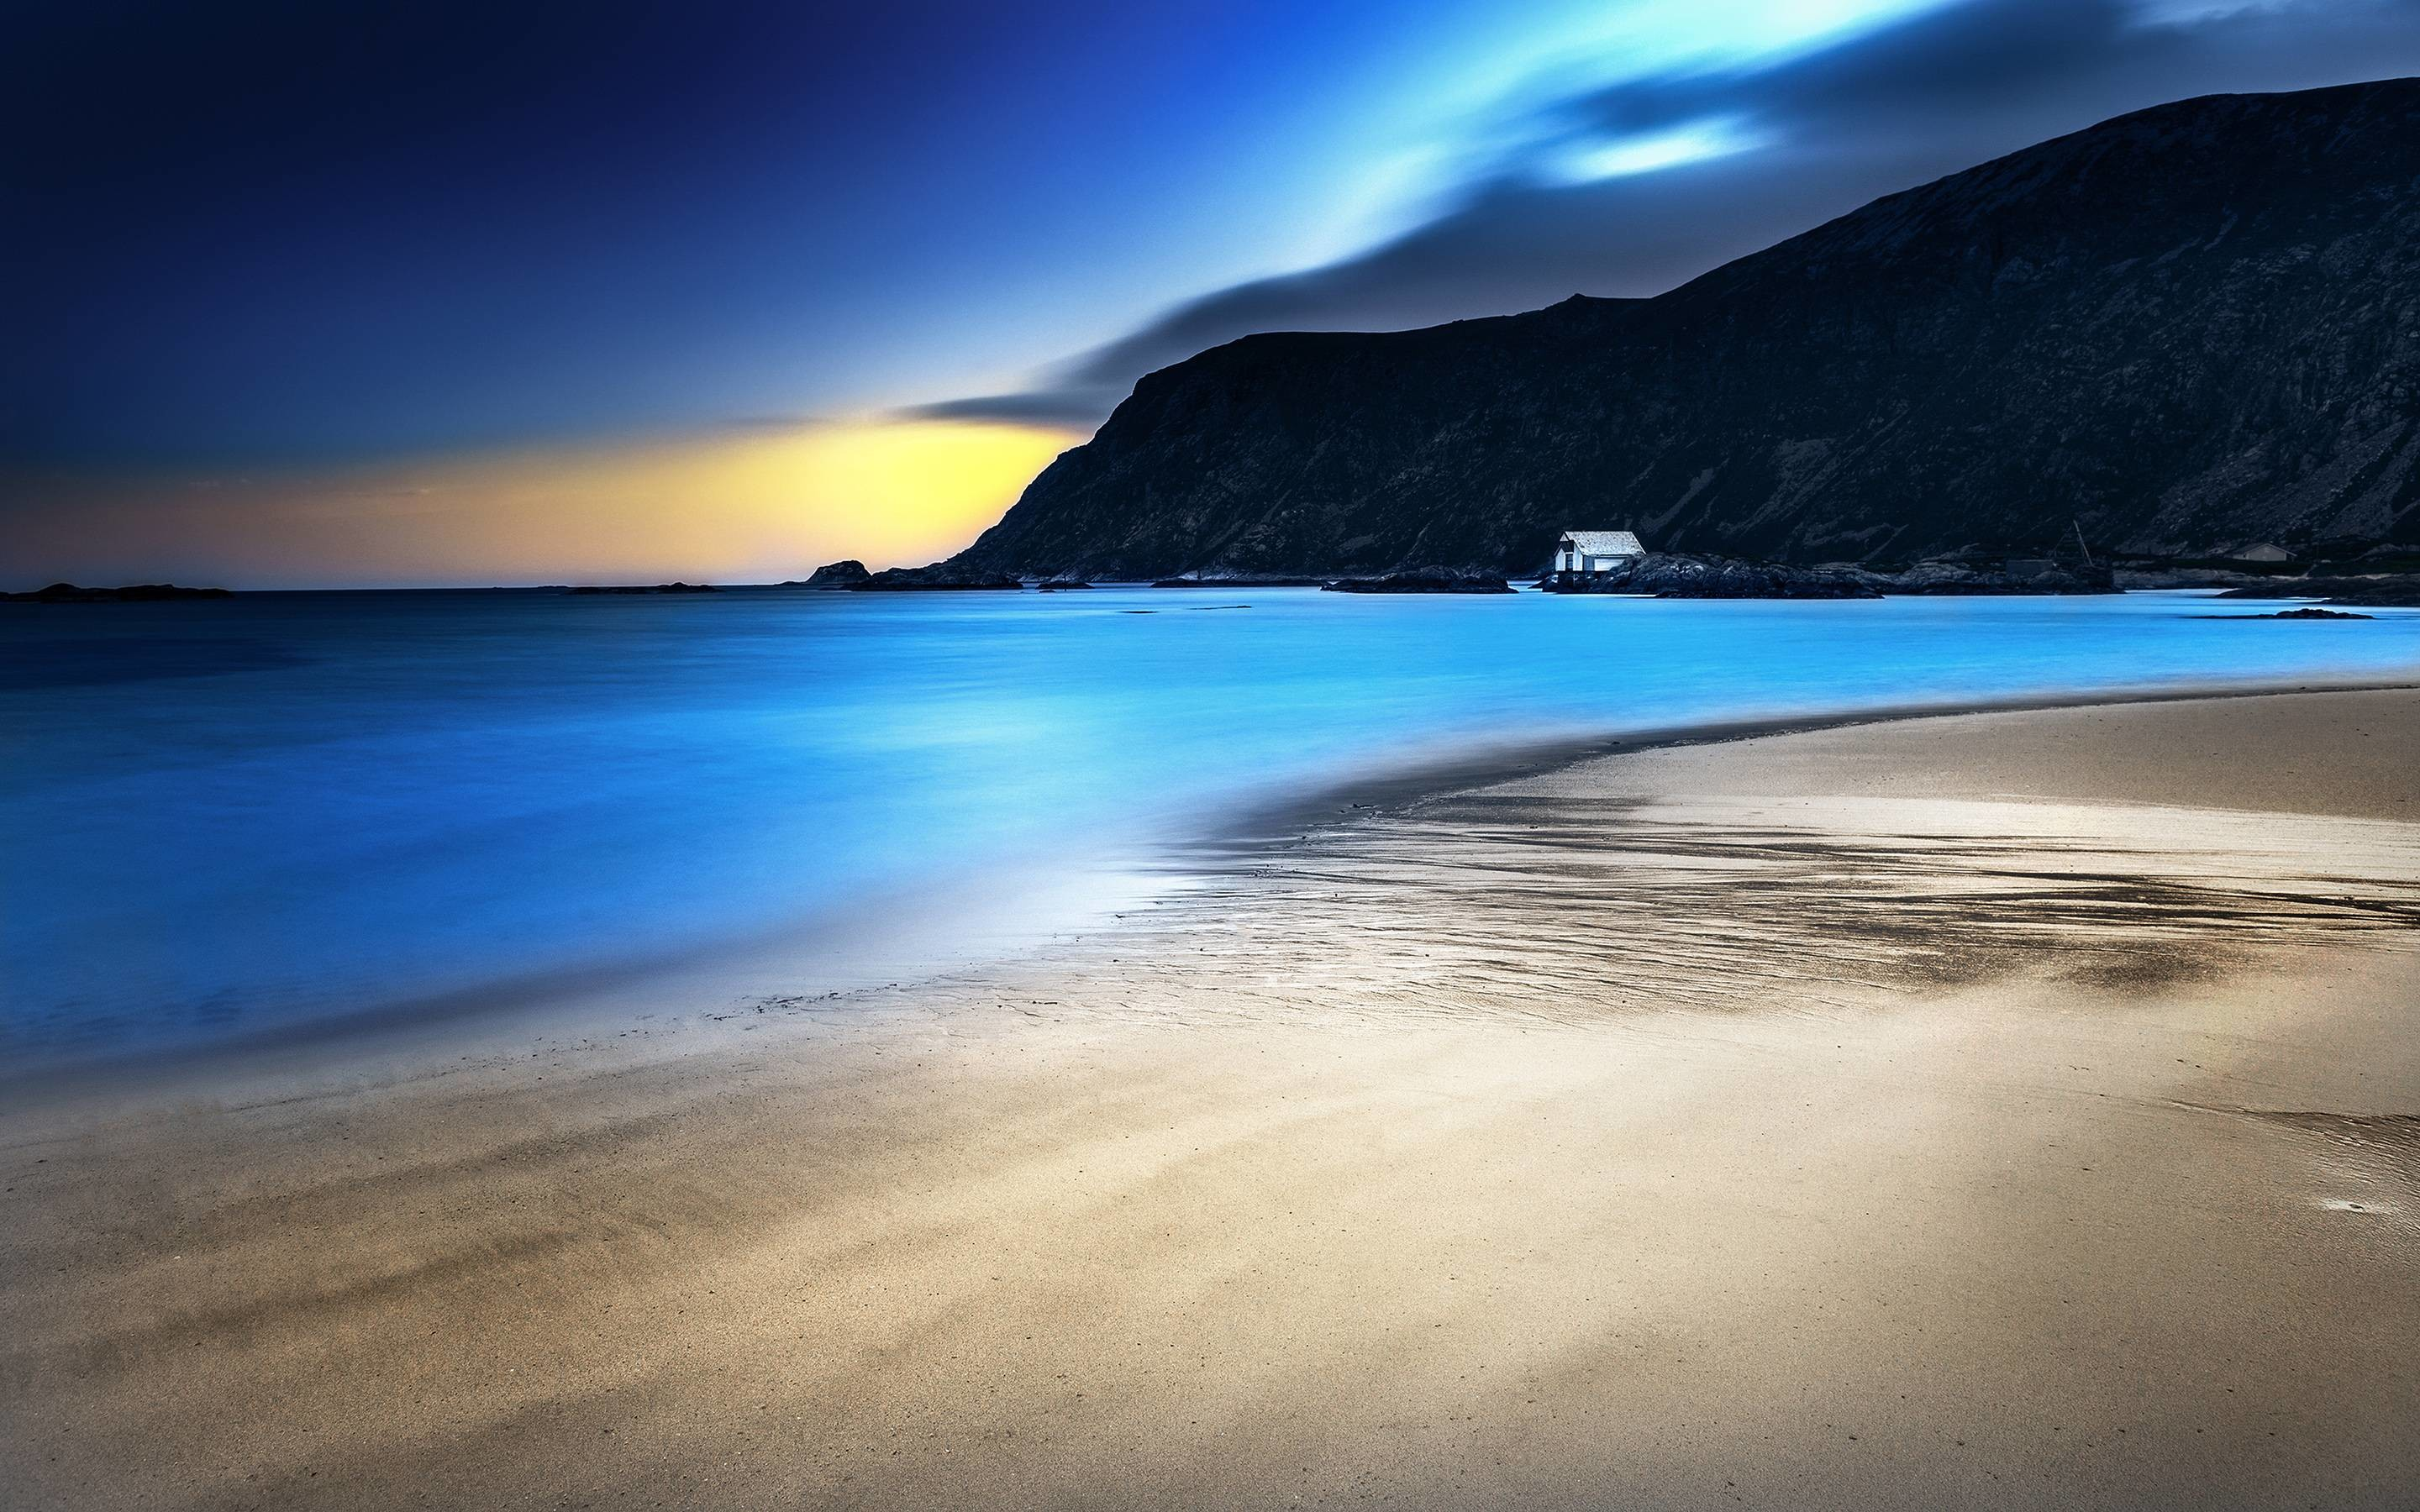 Beach At Night Wallpapers – Wallpaper Cave